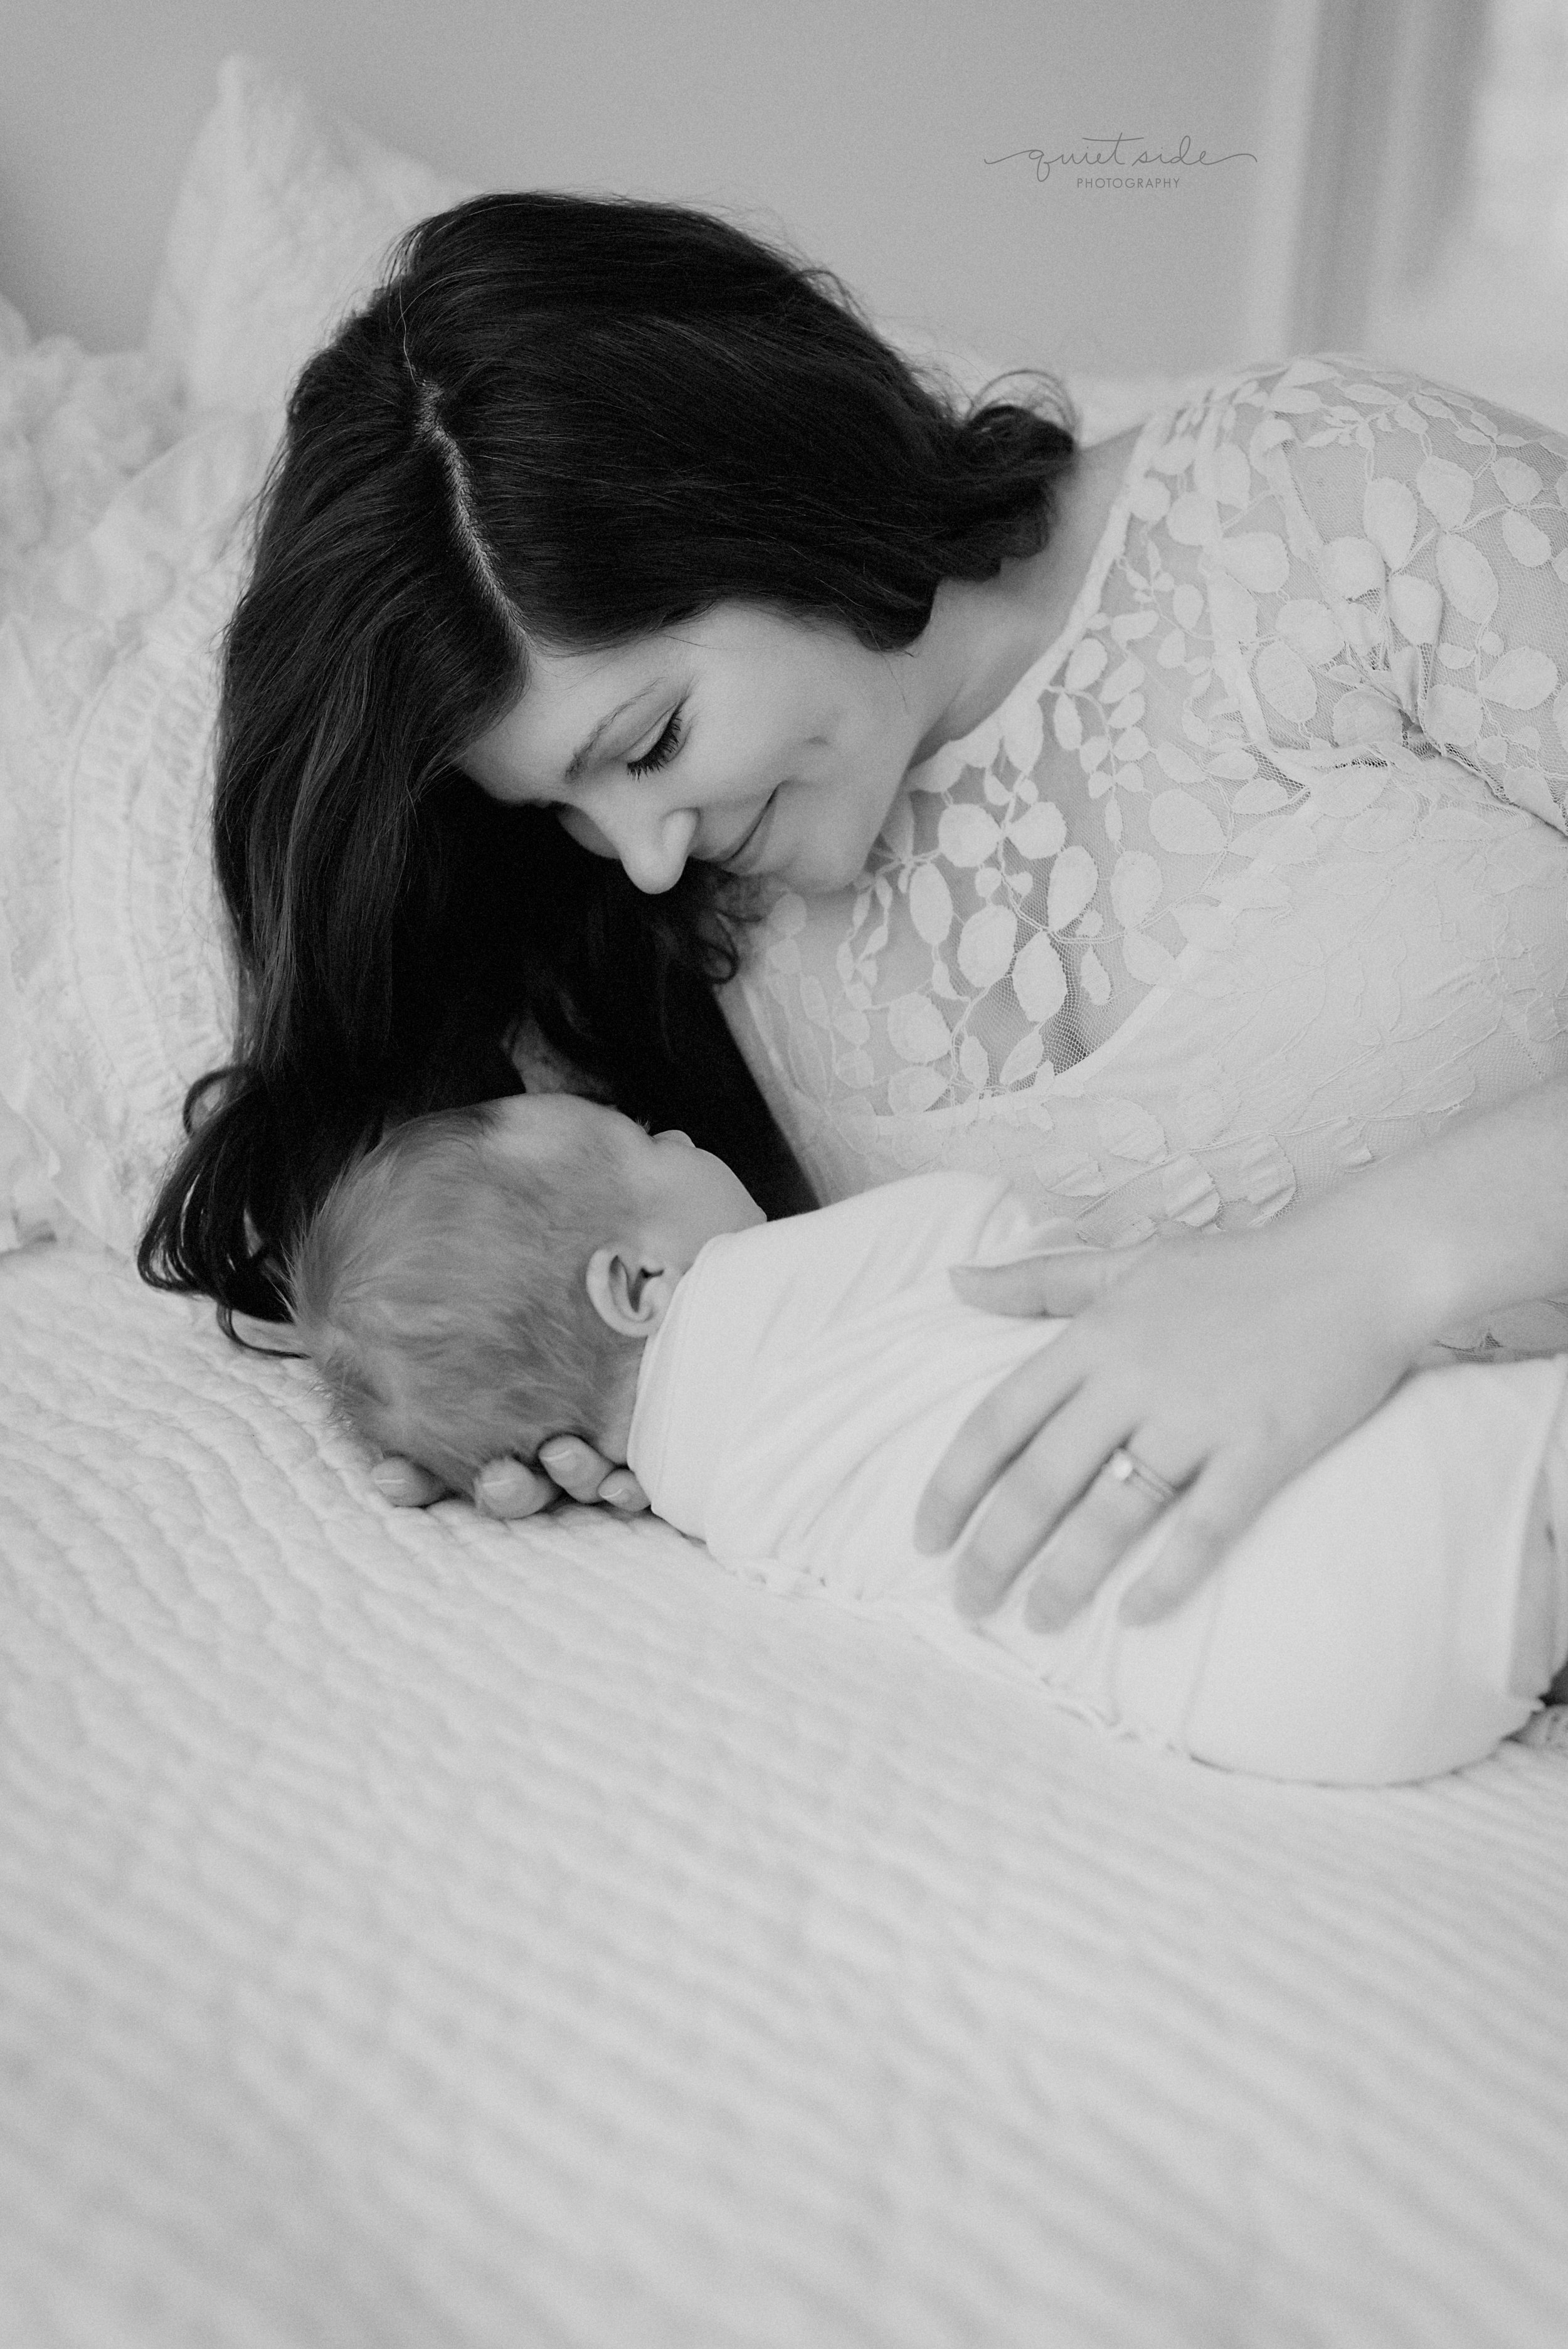 QuietSidePhotography-Reston,VA-LoudounCounty-Baby-Photographer-Washington,DC-NorthernVA-Motherhood-First-Time-Parents-Newborn-BlackandWhite-Timeless-In-Home-Newborn-BabyEmmett.jpg